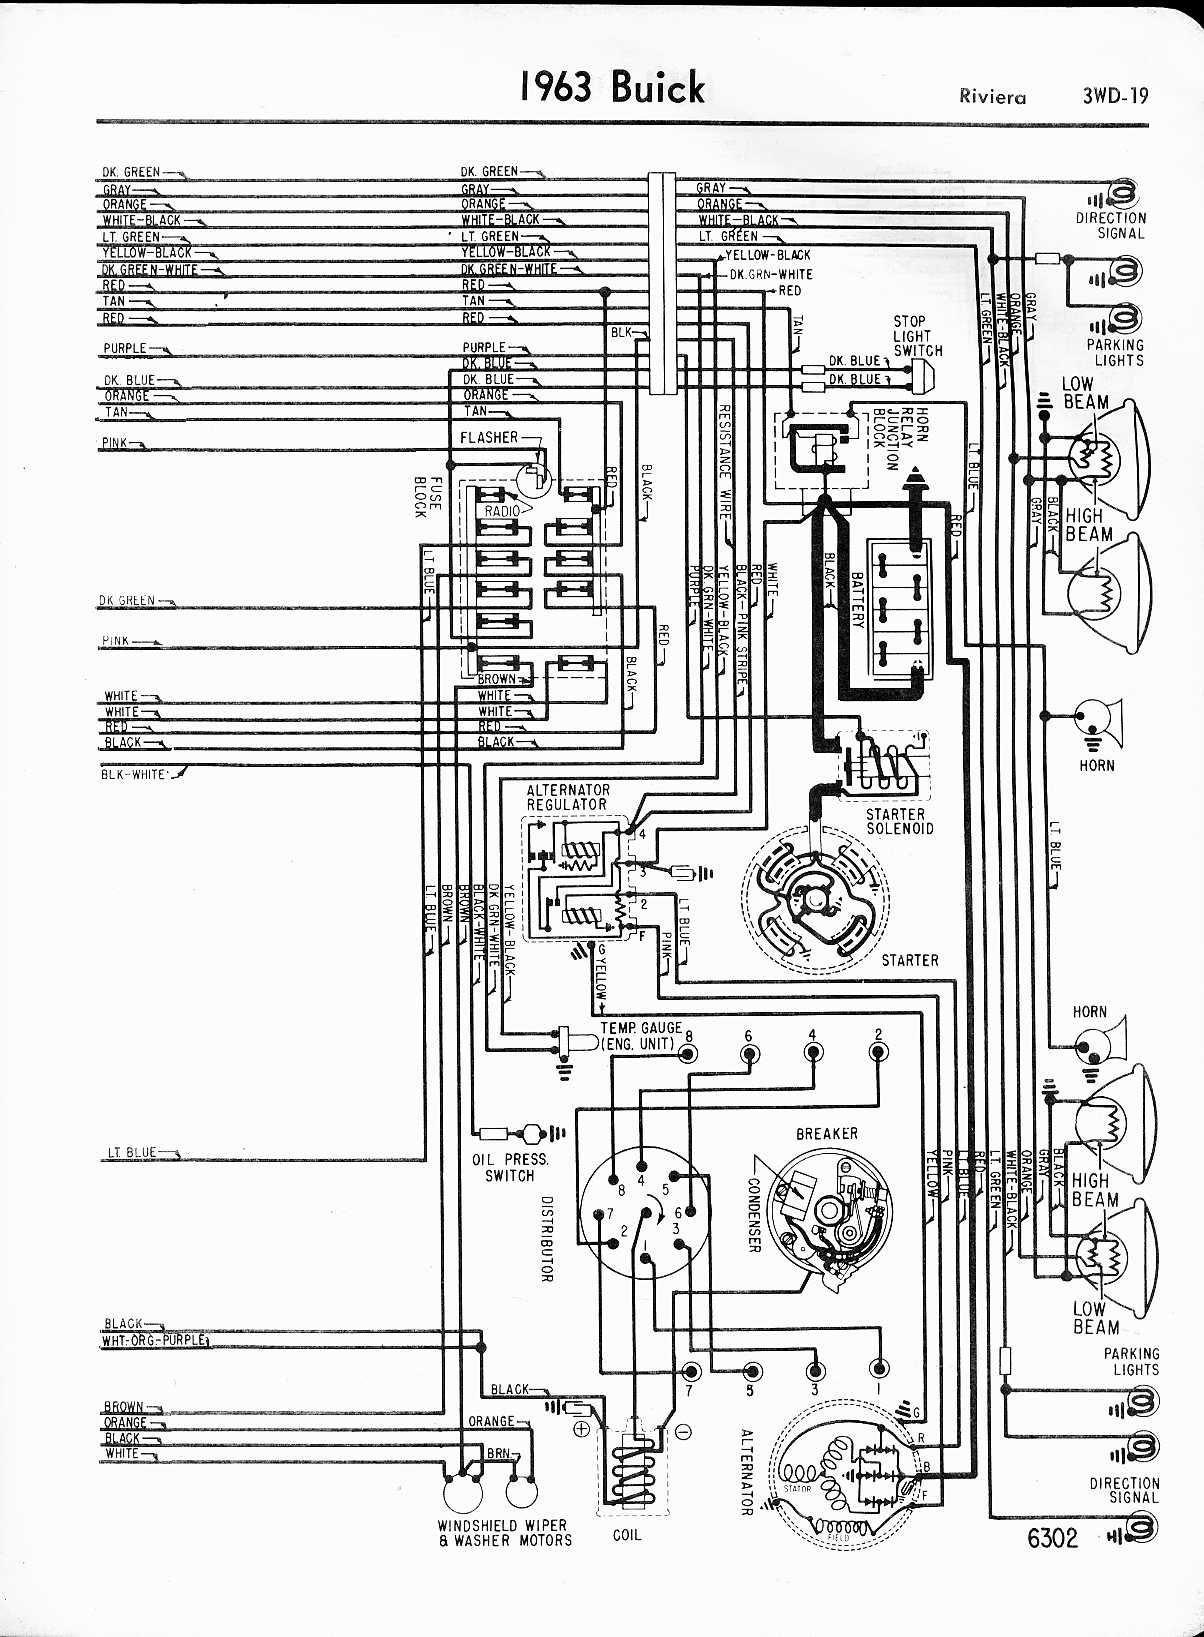 85 Buick Riviera Fuse Box Diagram 98 Pontiac Grand Prix Wiring Diagram Begeboy Wiring Diagram Source